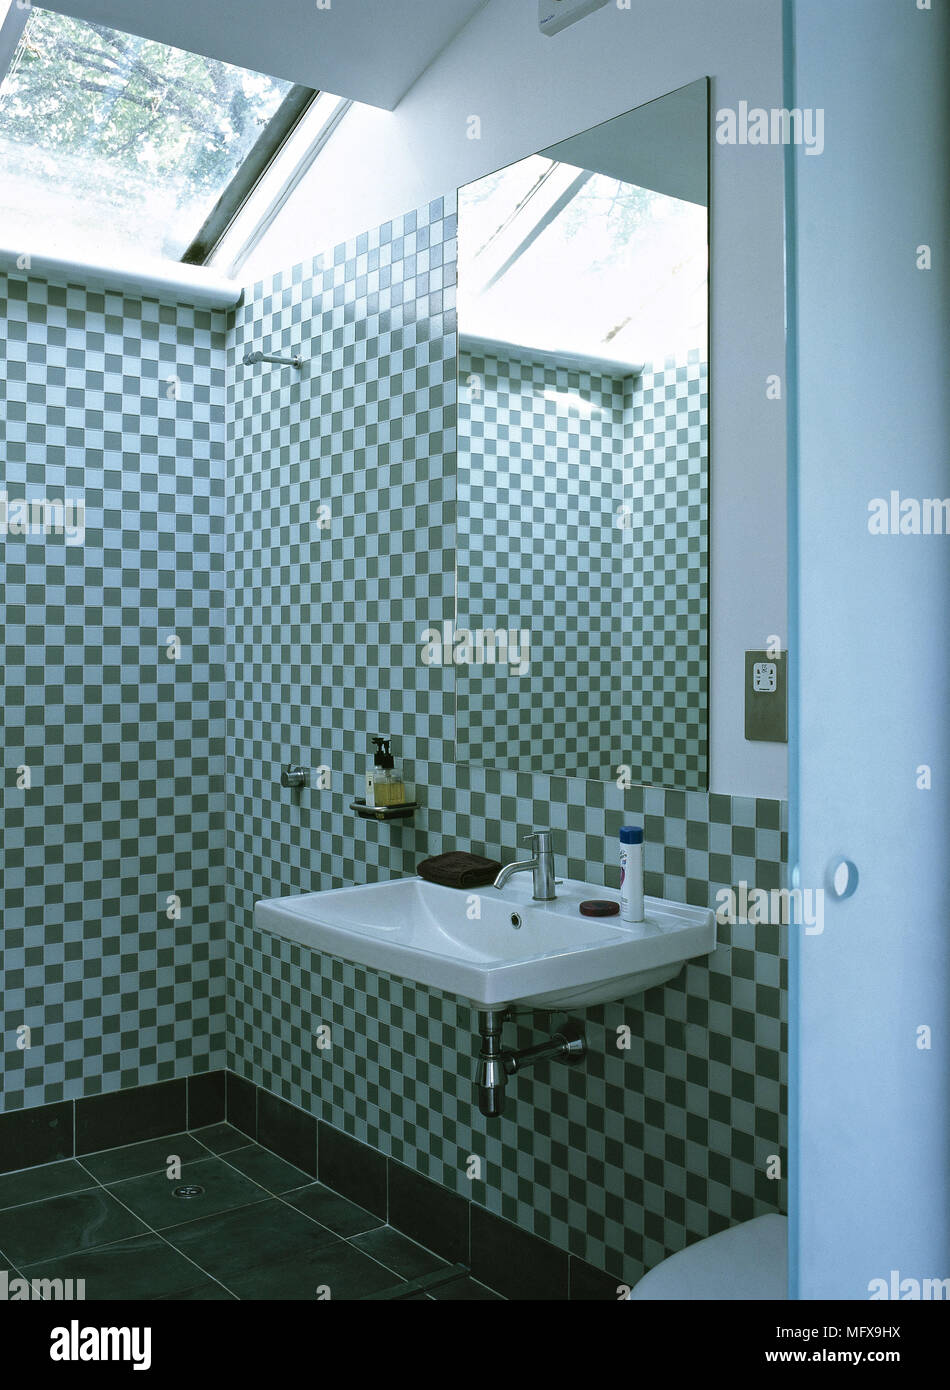 Bathroom with washbasin and shower area with check patterned mosaic ...